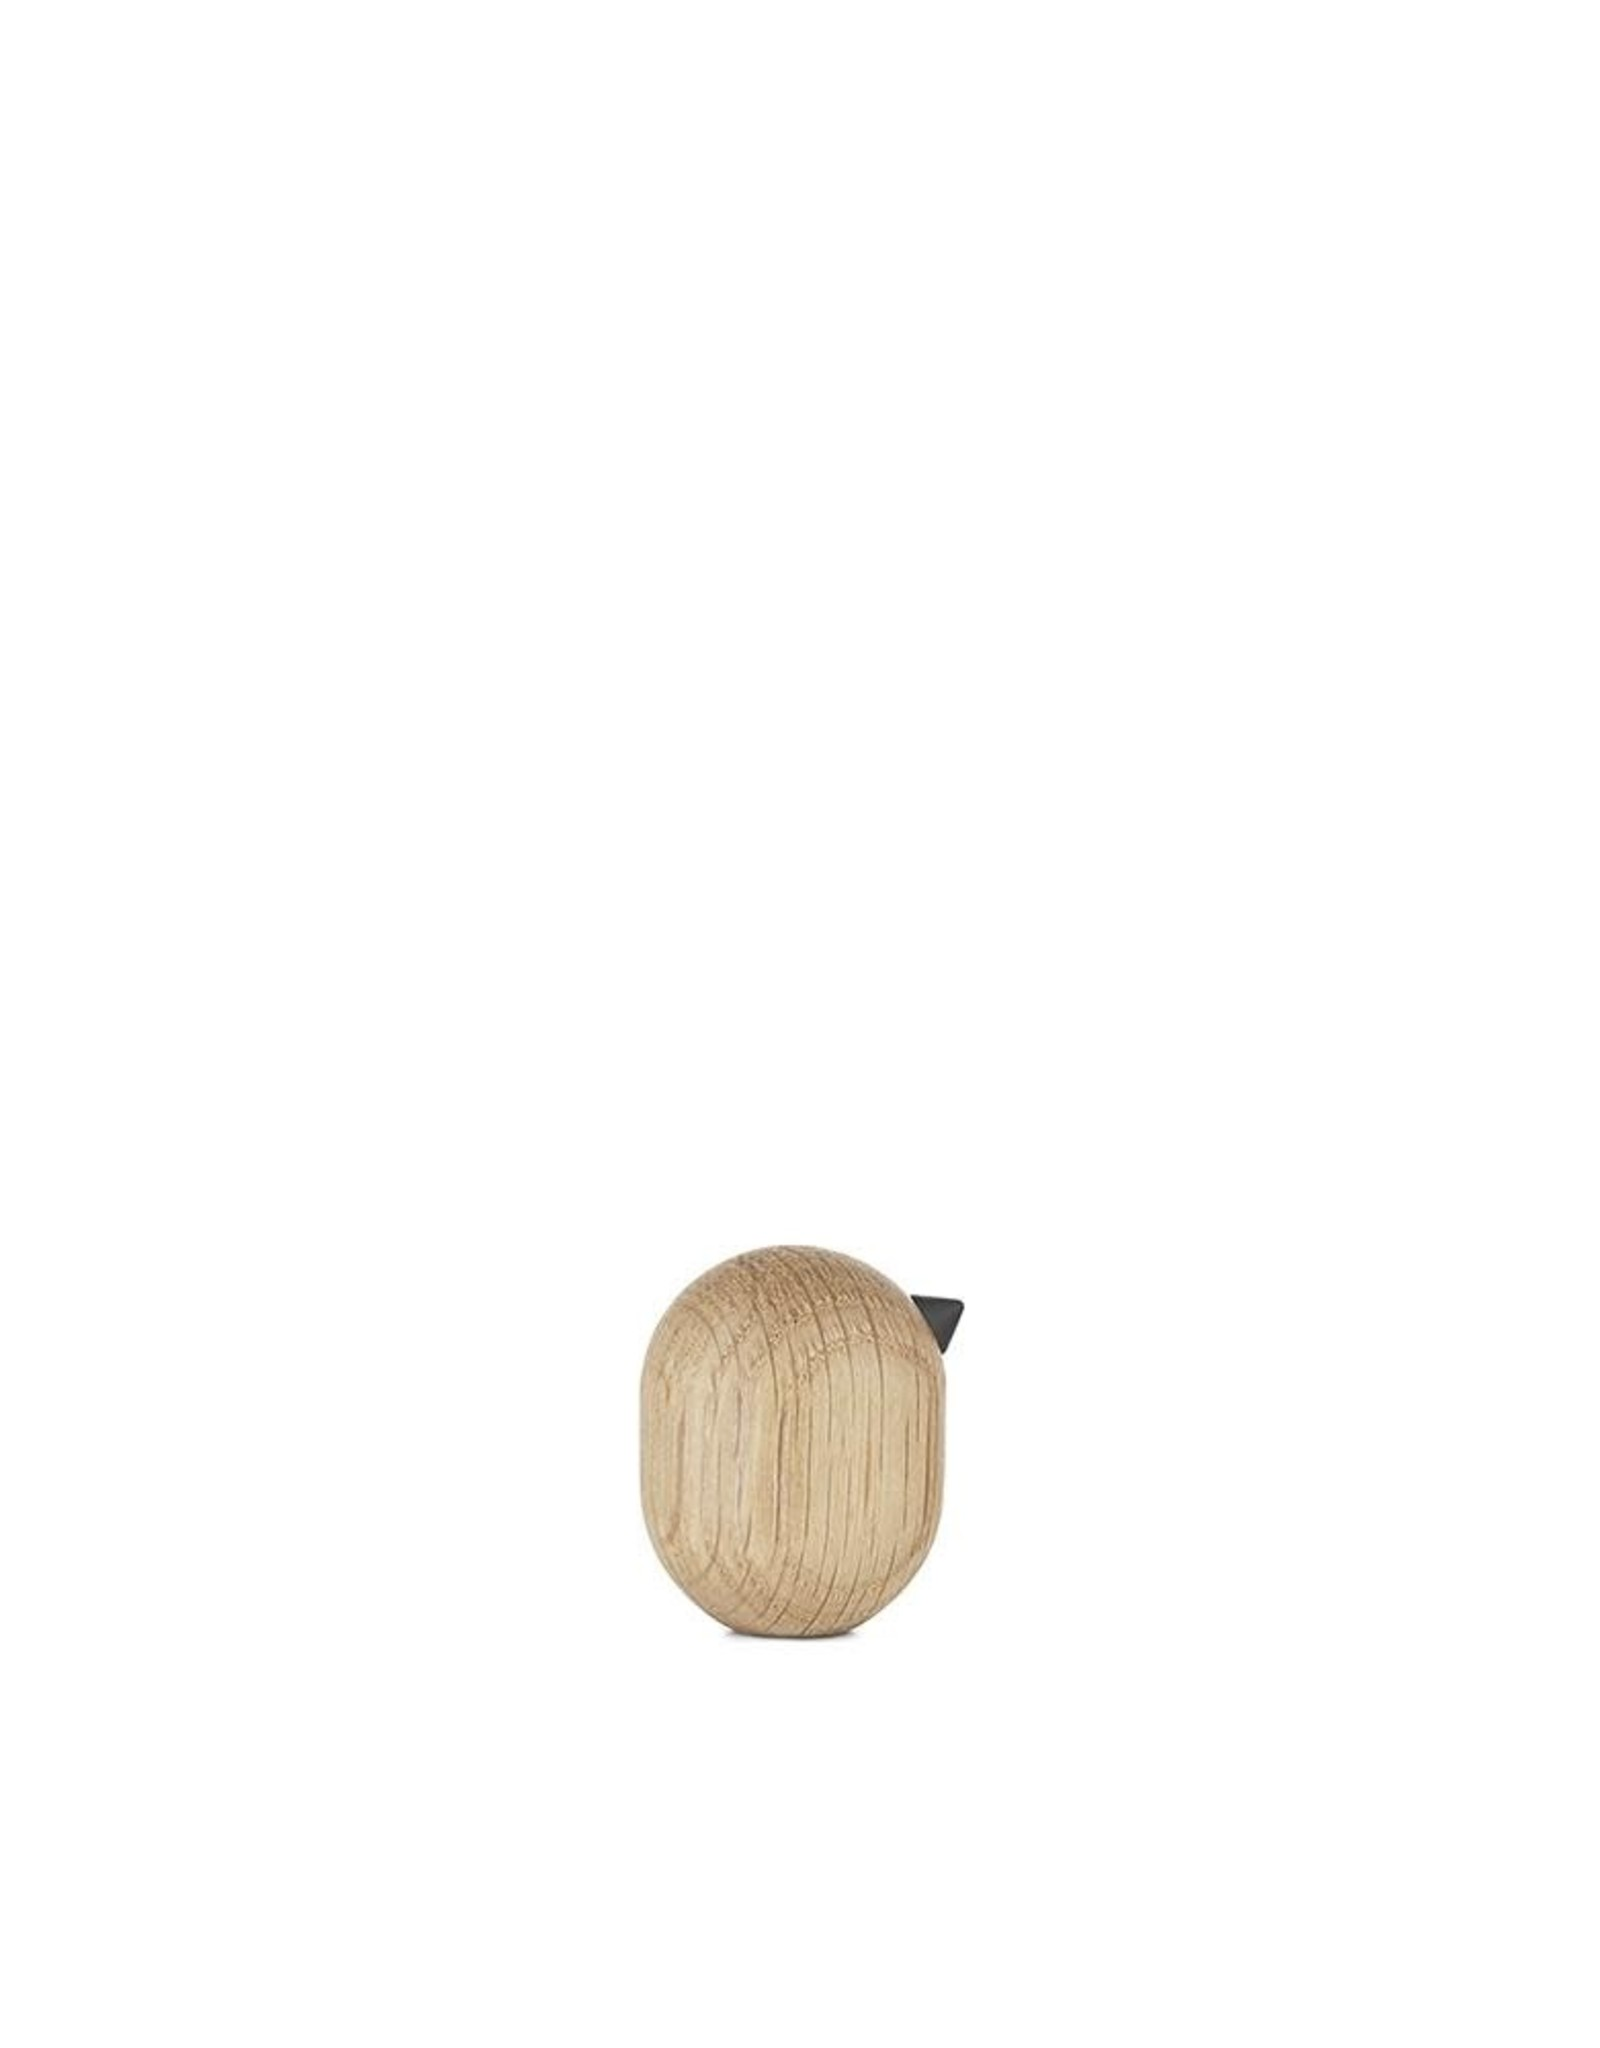 Normann Copenhagen Normann Little Bird 4,5 cm Oak